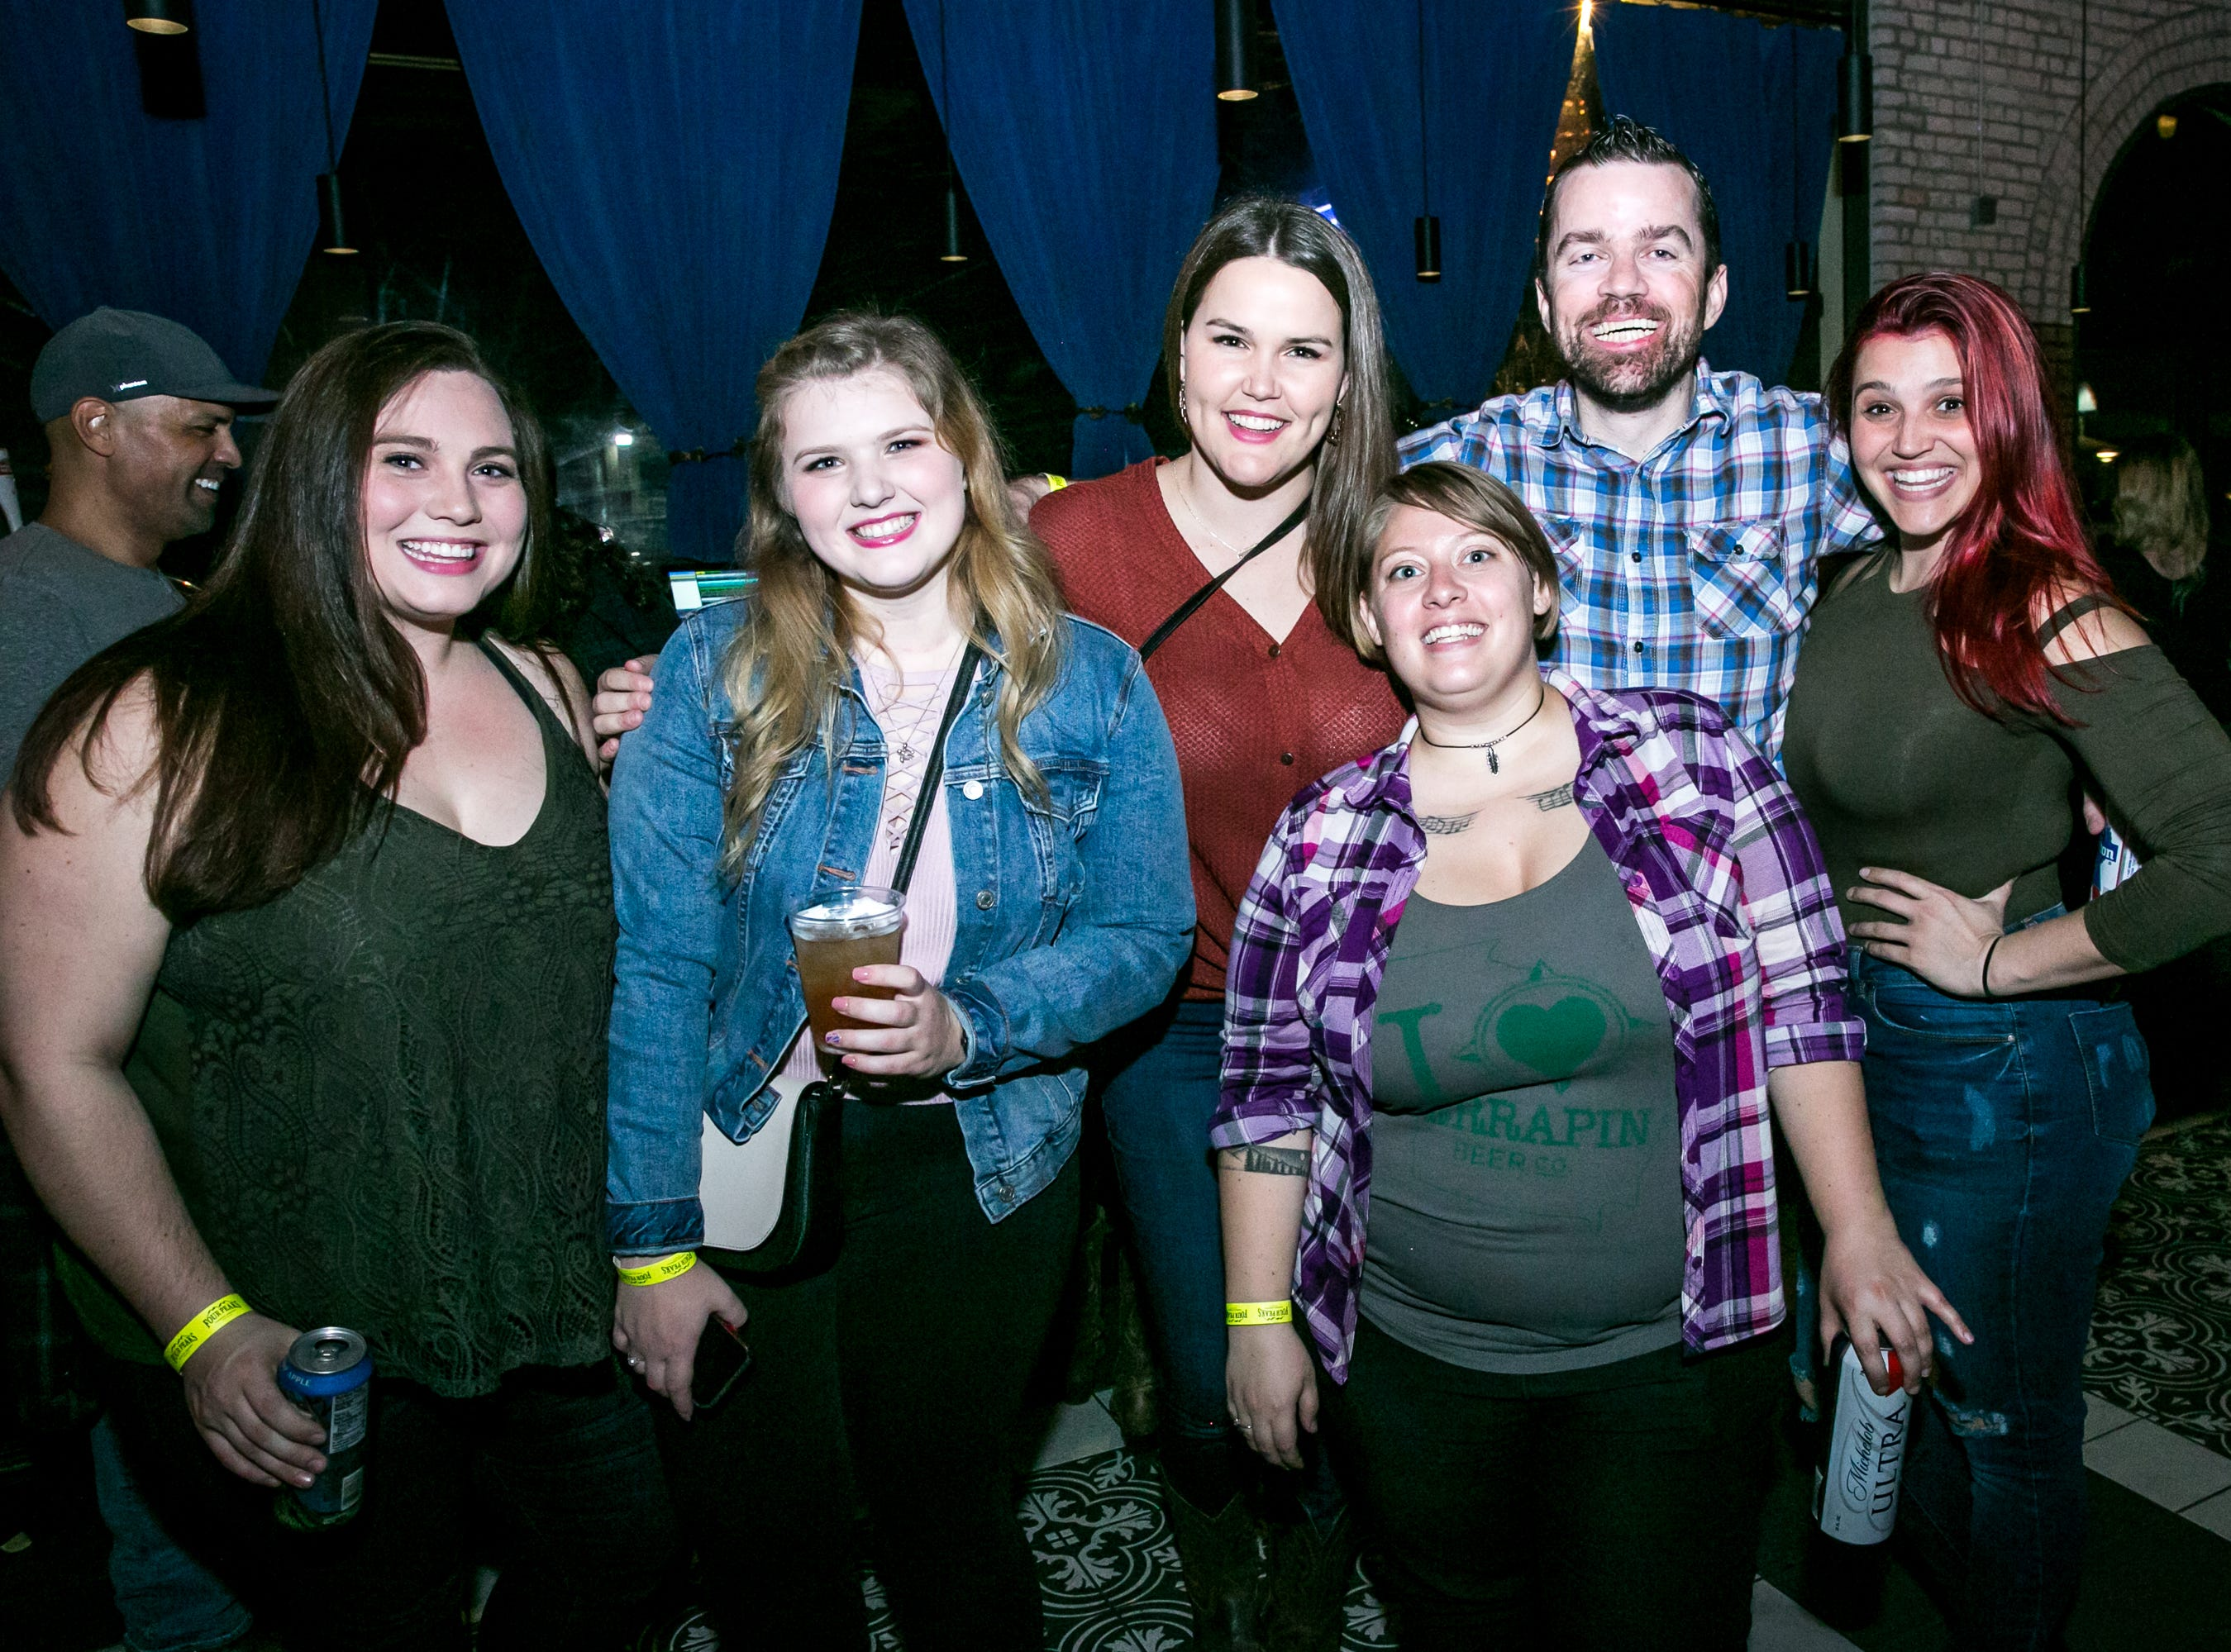 These guys lived it up during the KMLE Country 90's Throwback at The Van Buren on Friday, Jan. 11, 2019.